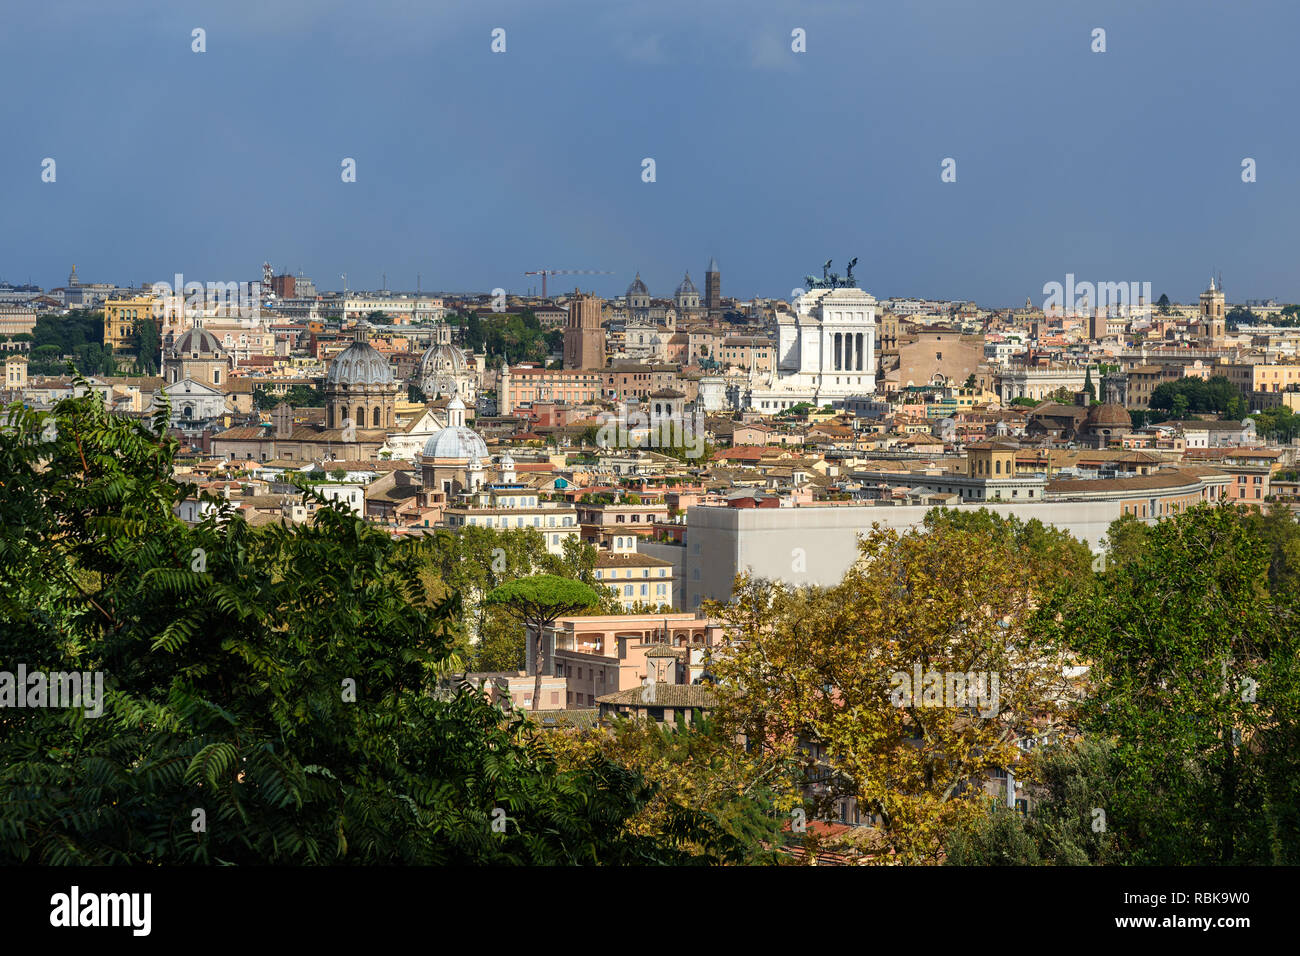 Janiculum Hill Rome Stock Photos Janiculum Hill Rome Stock